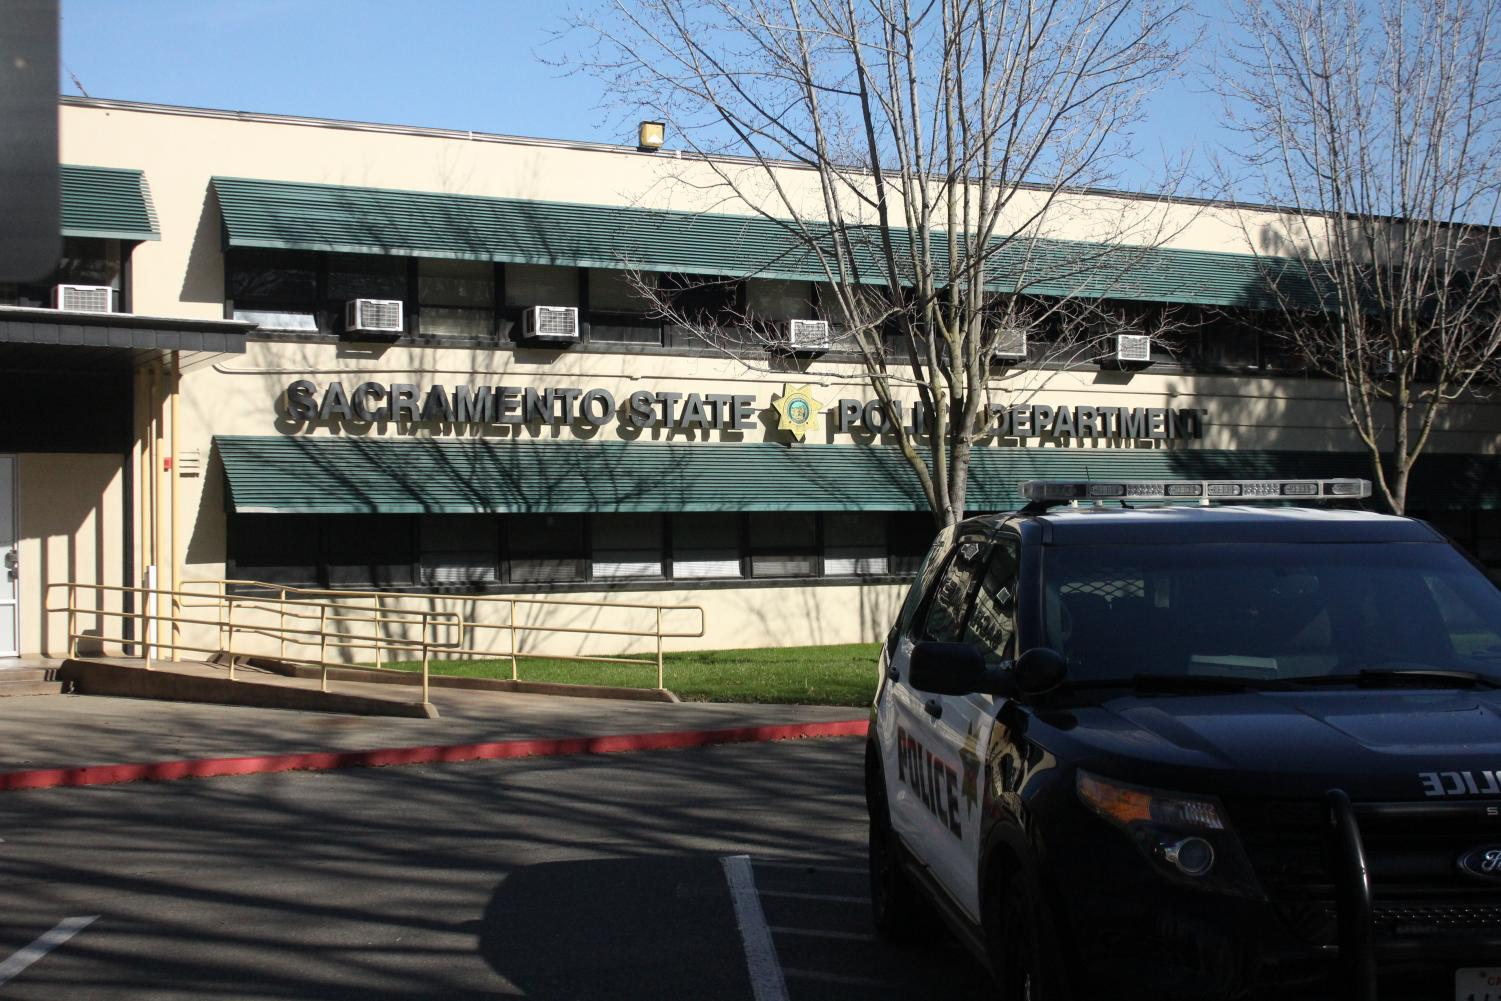 The Sac State Police Department conducted an investigation into the embezzlement that occurred. The embezzlement was first noticed in the crime logs available at the campus police department's front desk.